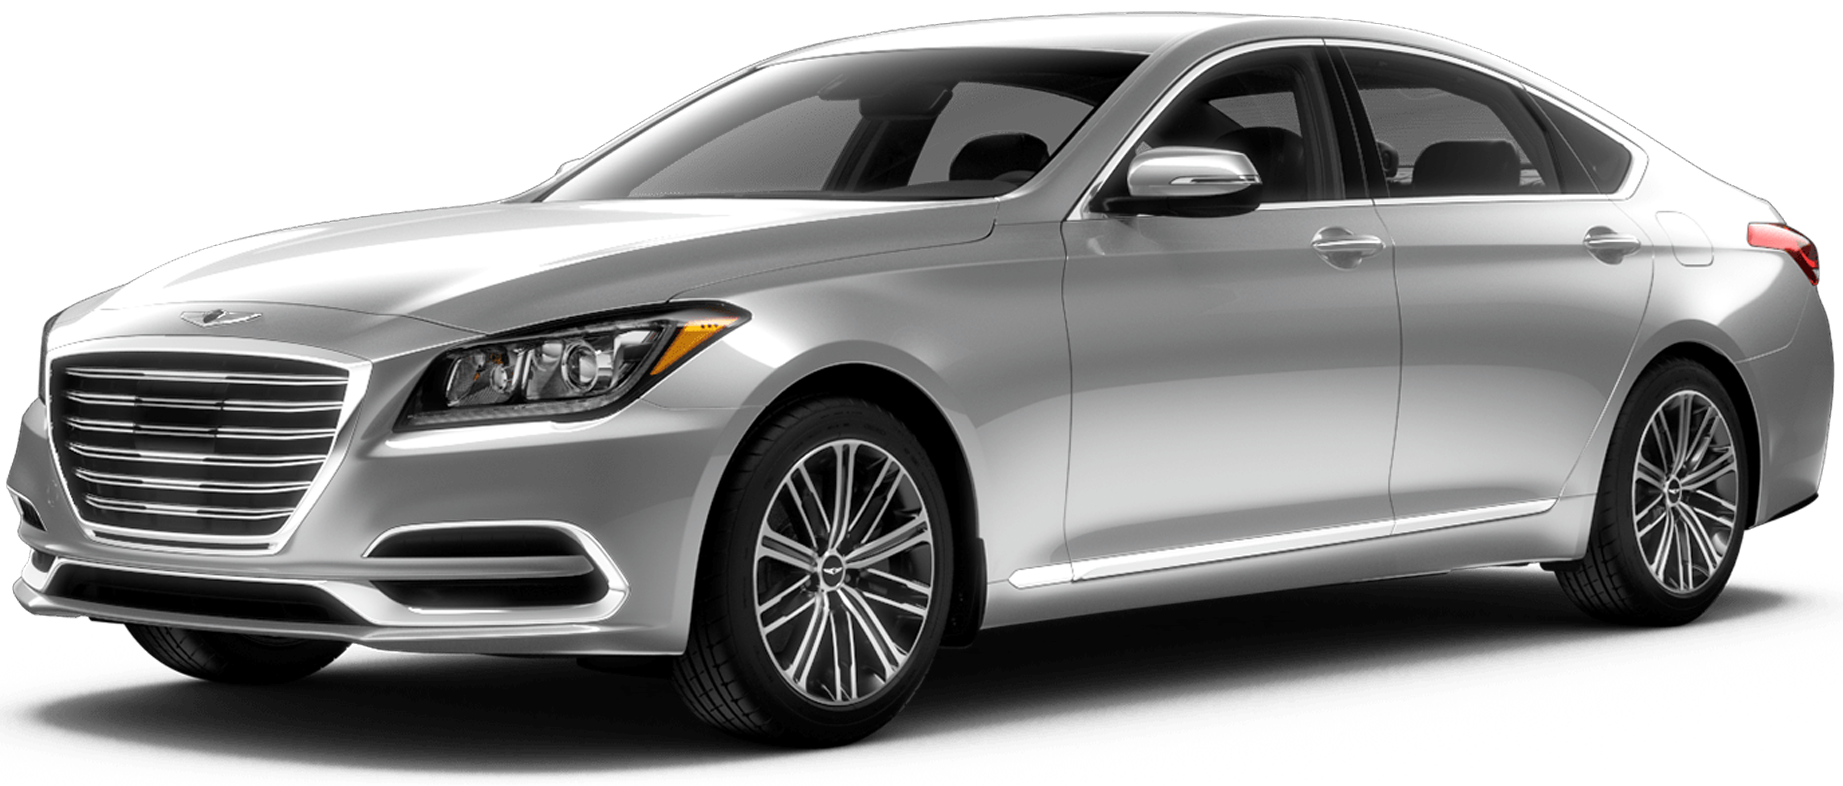 Genesis G80 Lease >> 2019 Genesis G80 Incentives Specials Offers In Bakersfield Ca